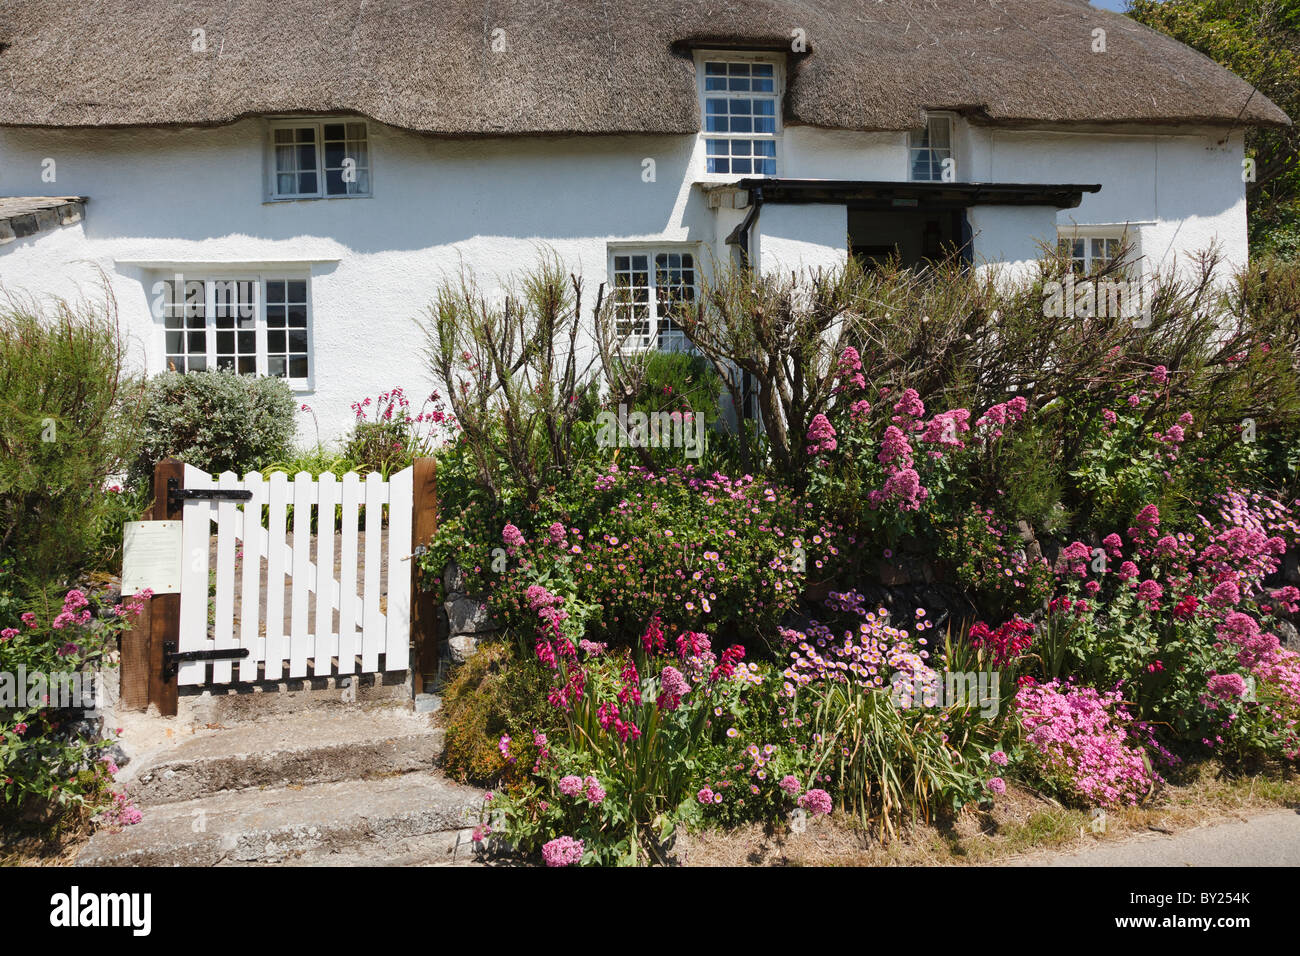 Summer flowers and thatched cottage at Crackington Haven, Cornwall, England. - Stock Image